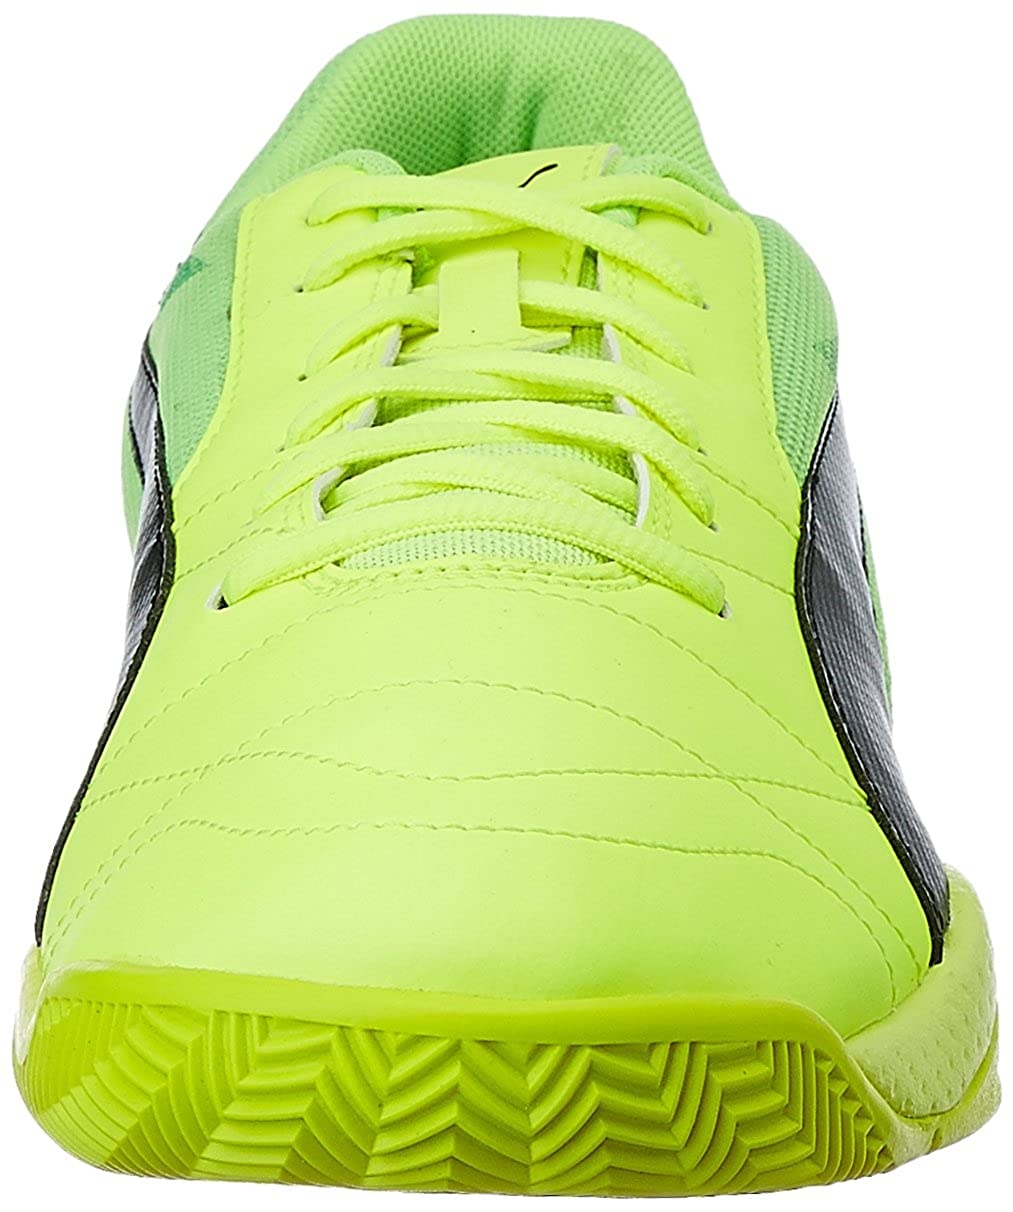 176f2762b5ae69 Puma Men s Veloz Indoor III Badminton Shoes  Buy Online at Low Prices in  India - Amazon.in